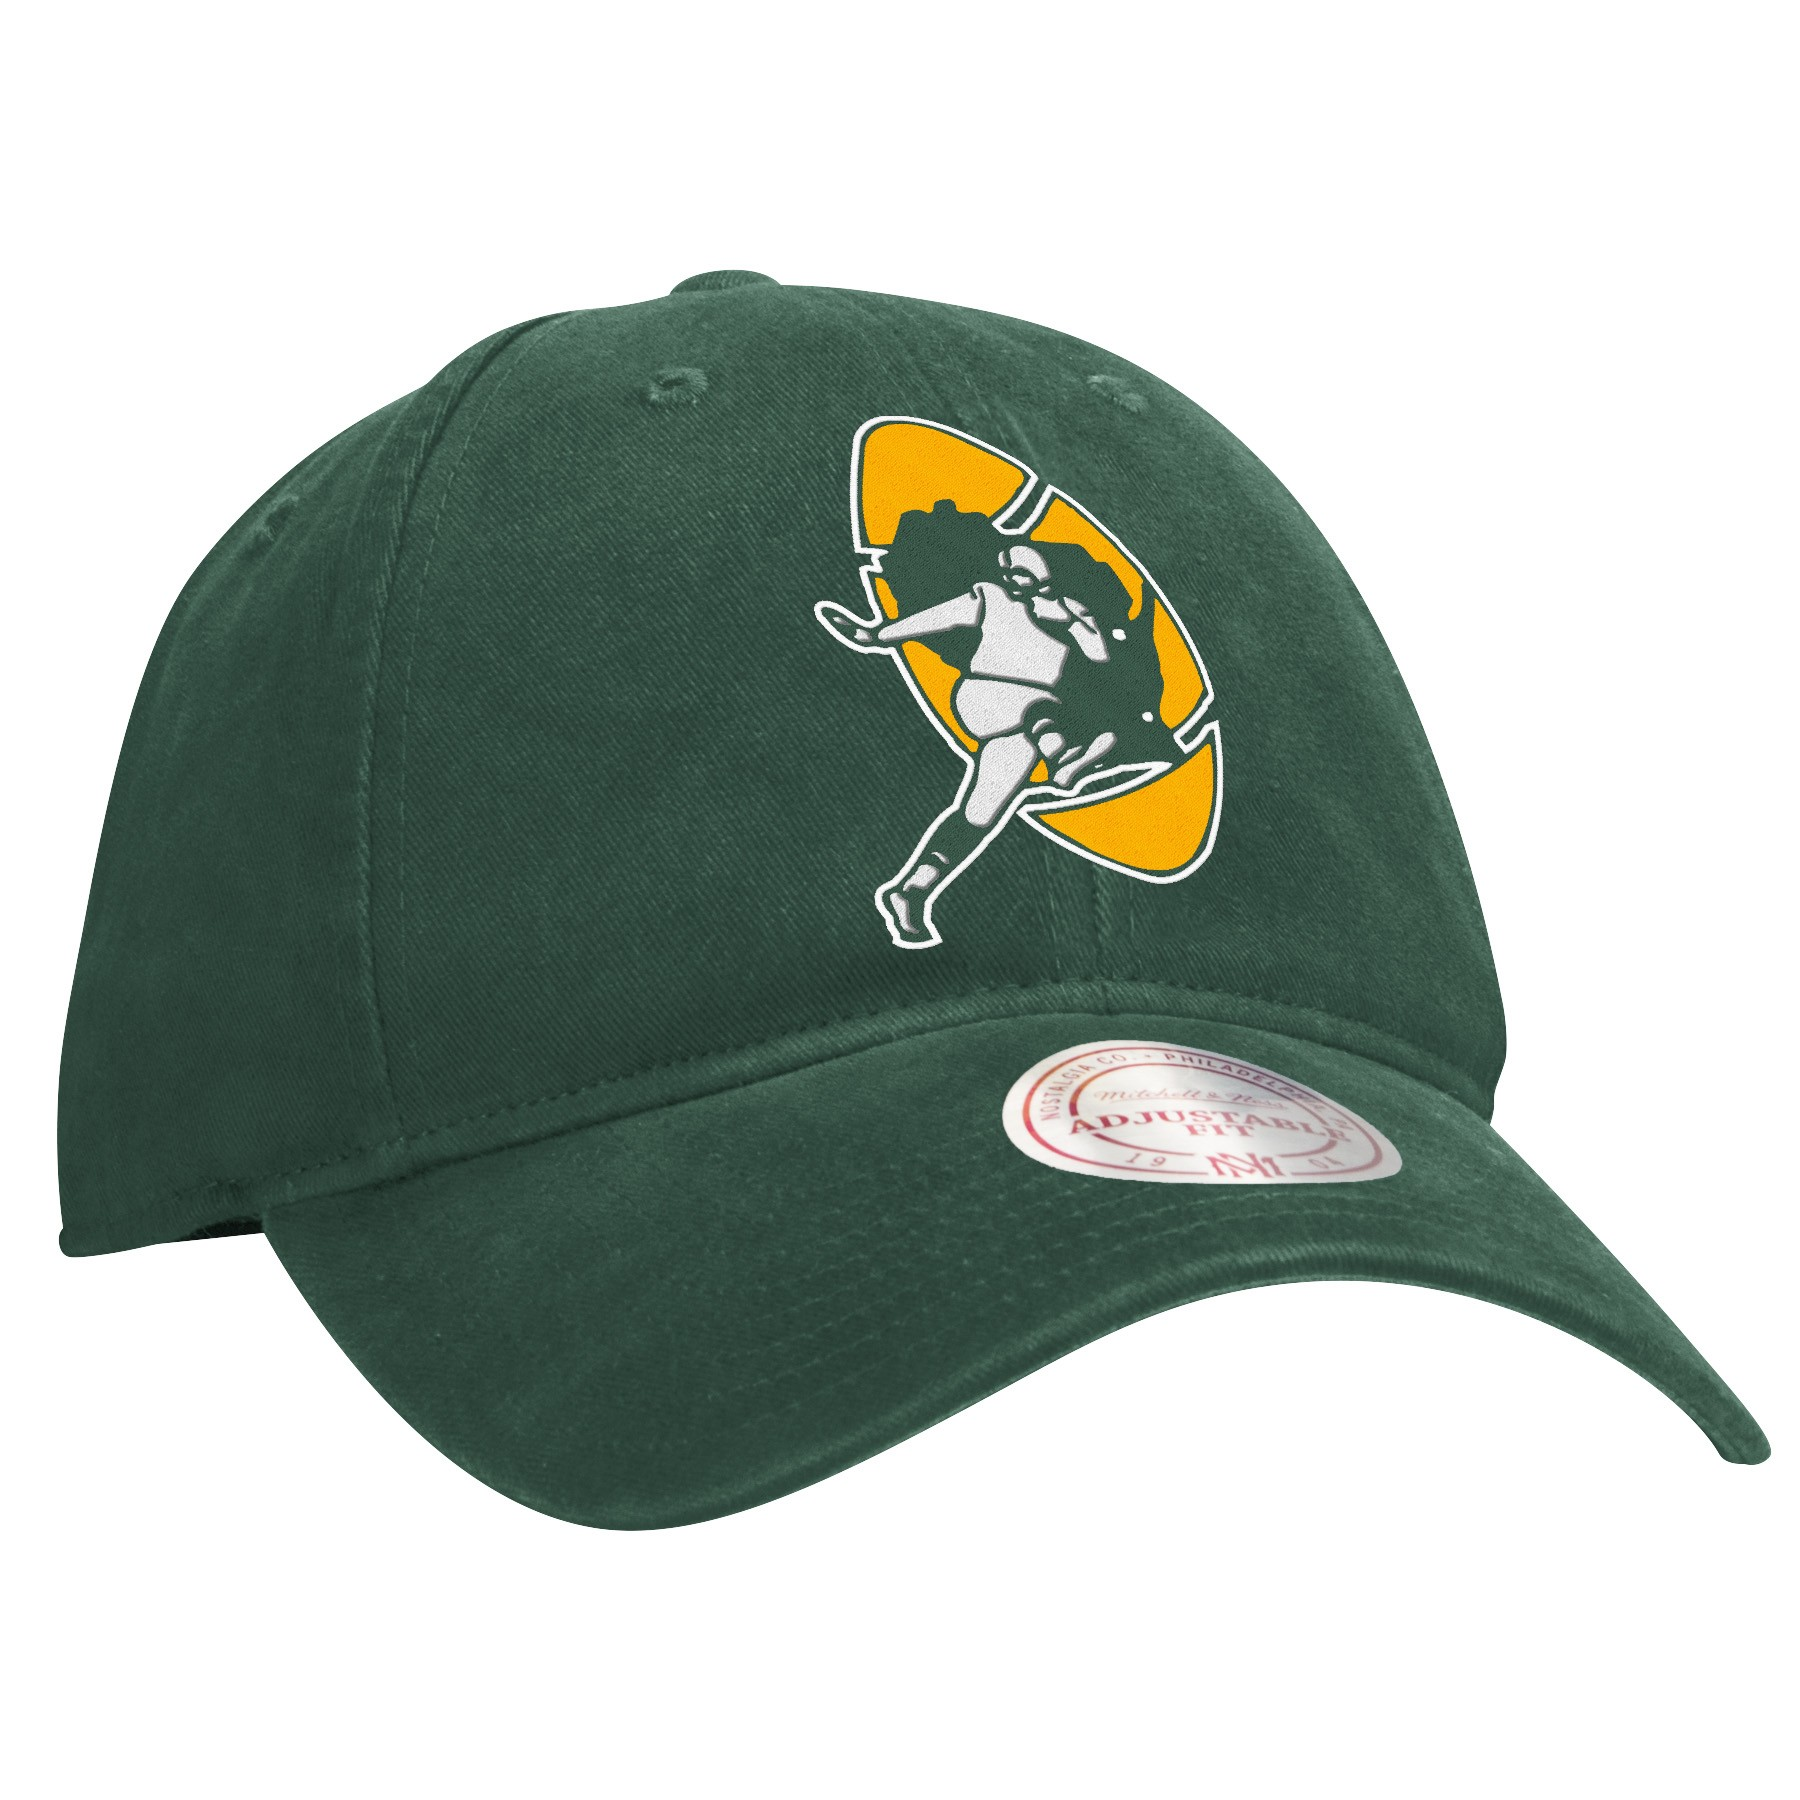 be0757ff923 Details about Green Bay Packers Mitchell   Ness NFL Throwback Felt Logo  Slouch Adjustable Hat